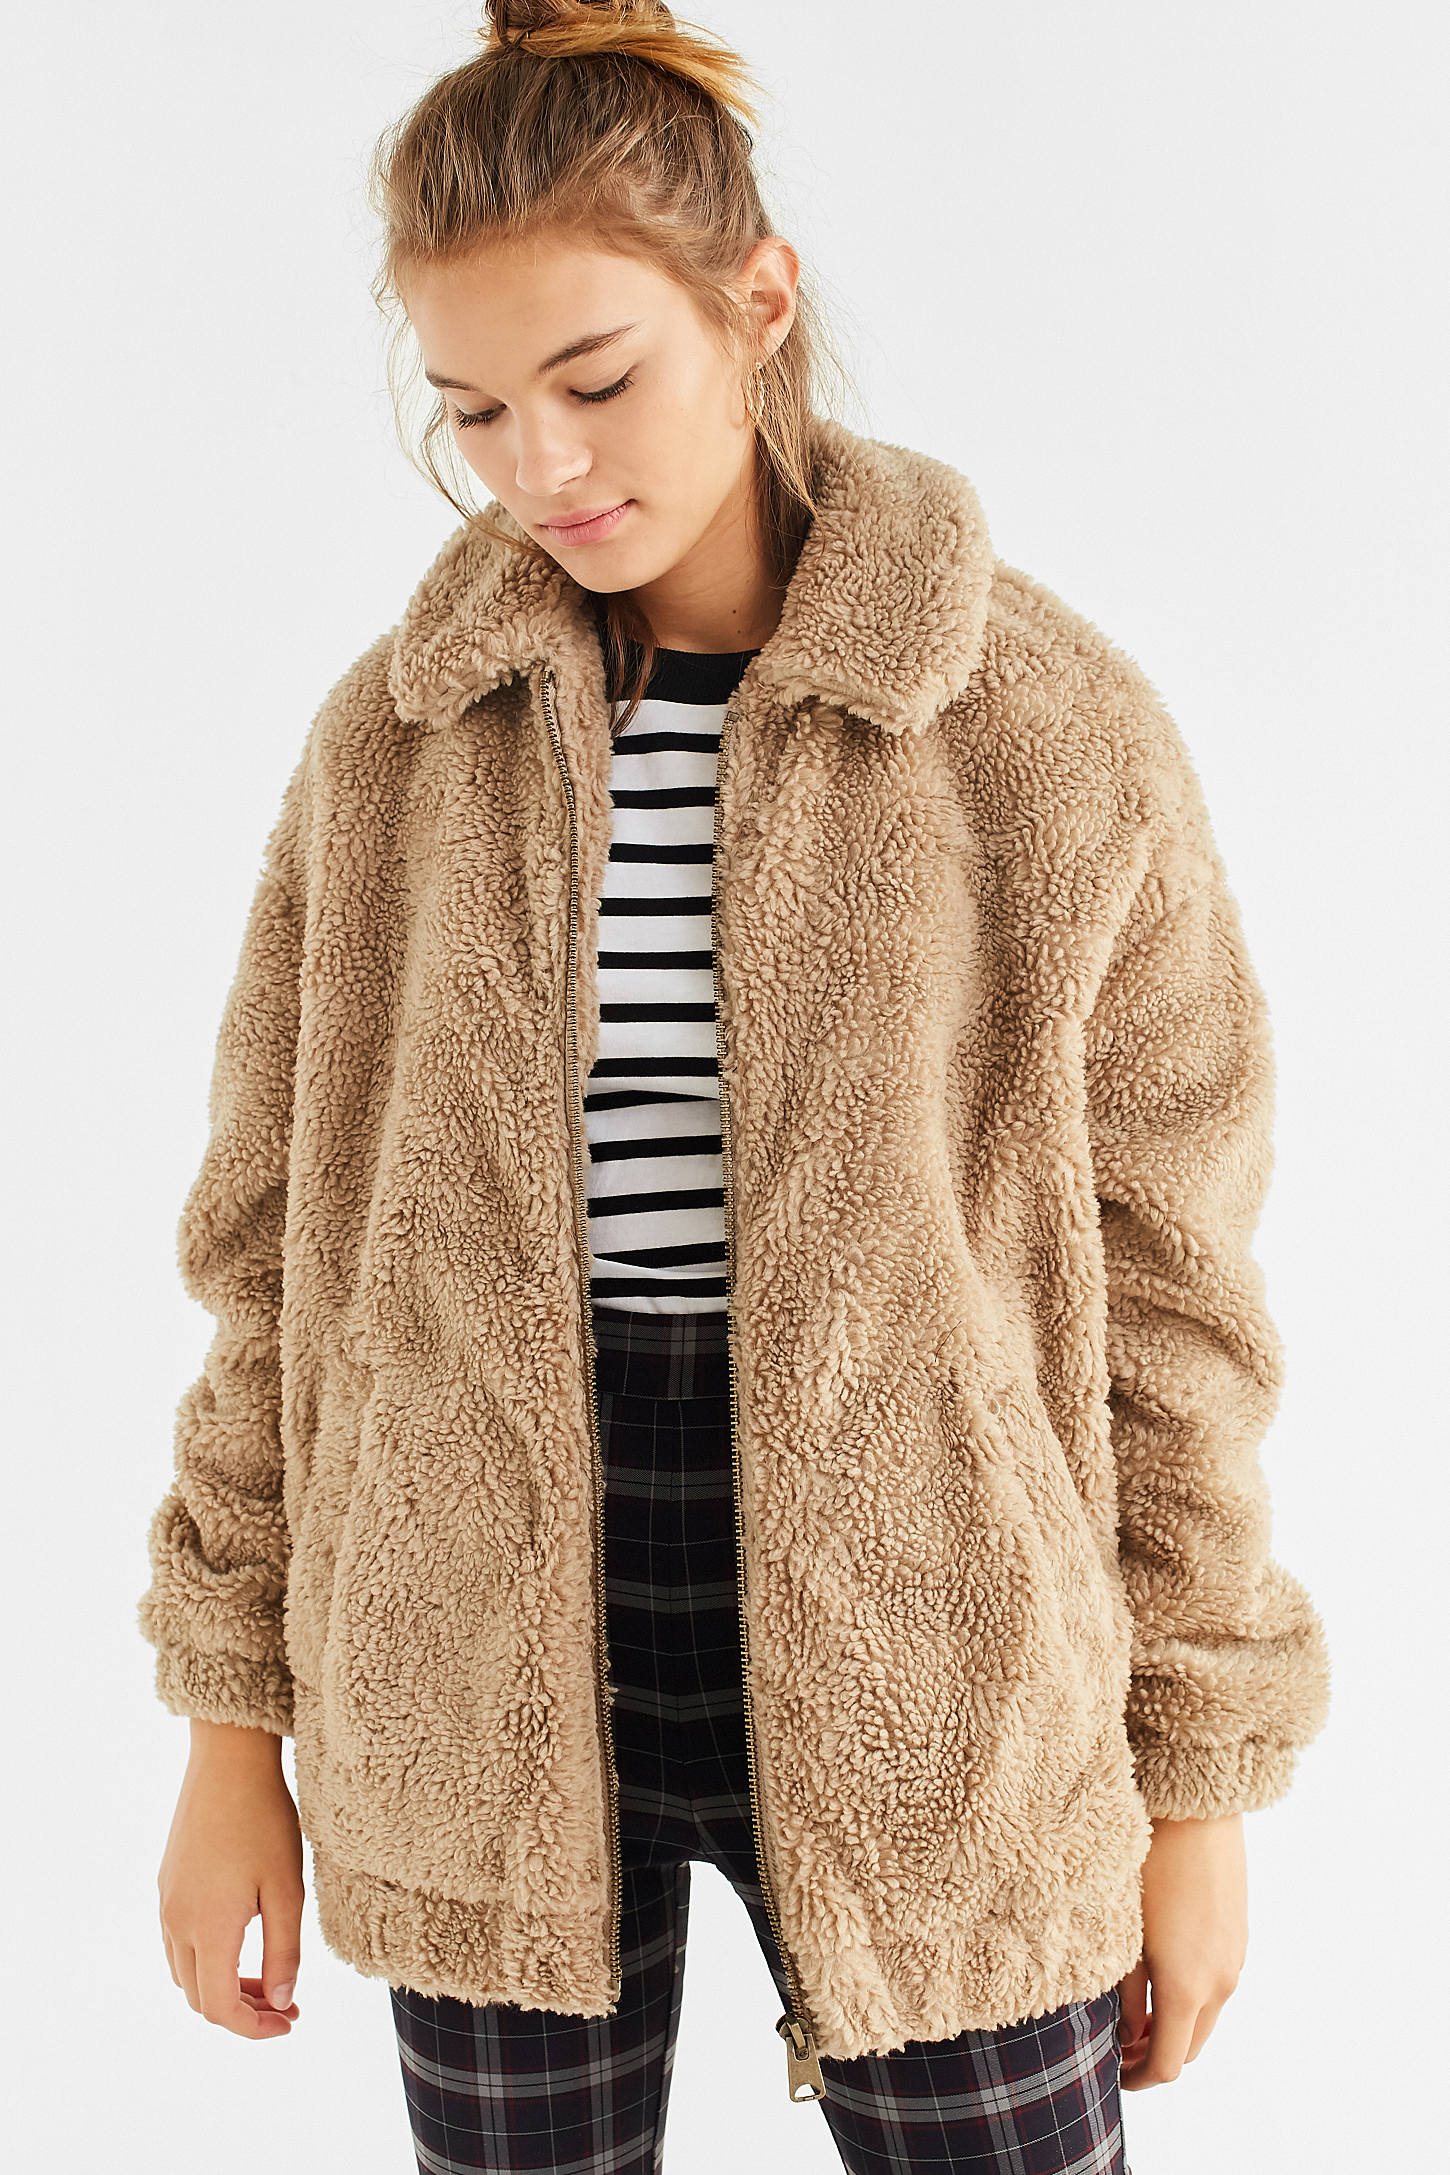 Light Before Dark Oversized Faux Sherpa Zip Up Jacket Urban Outfitters